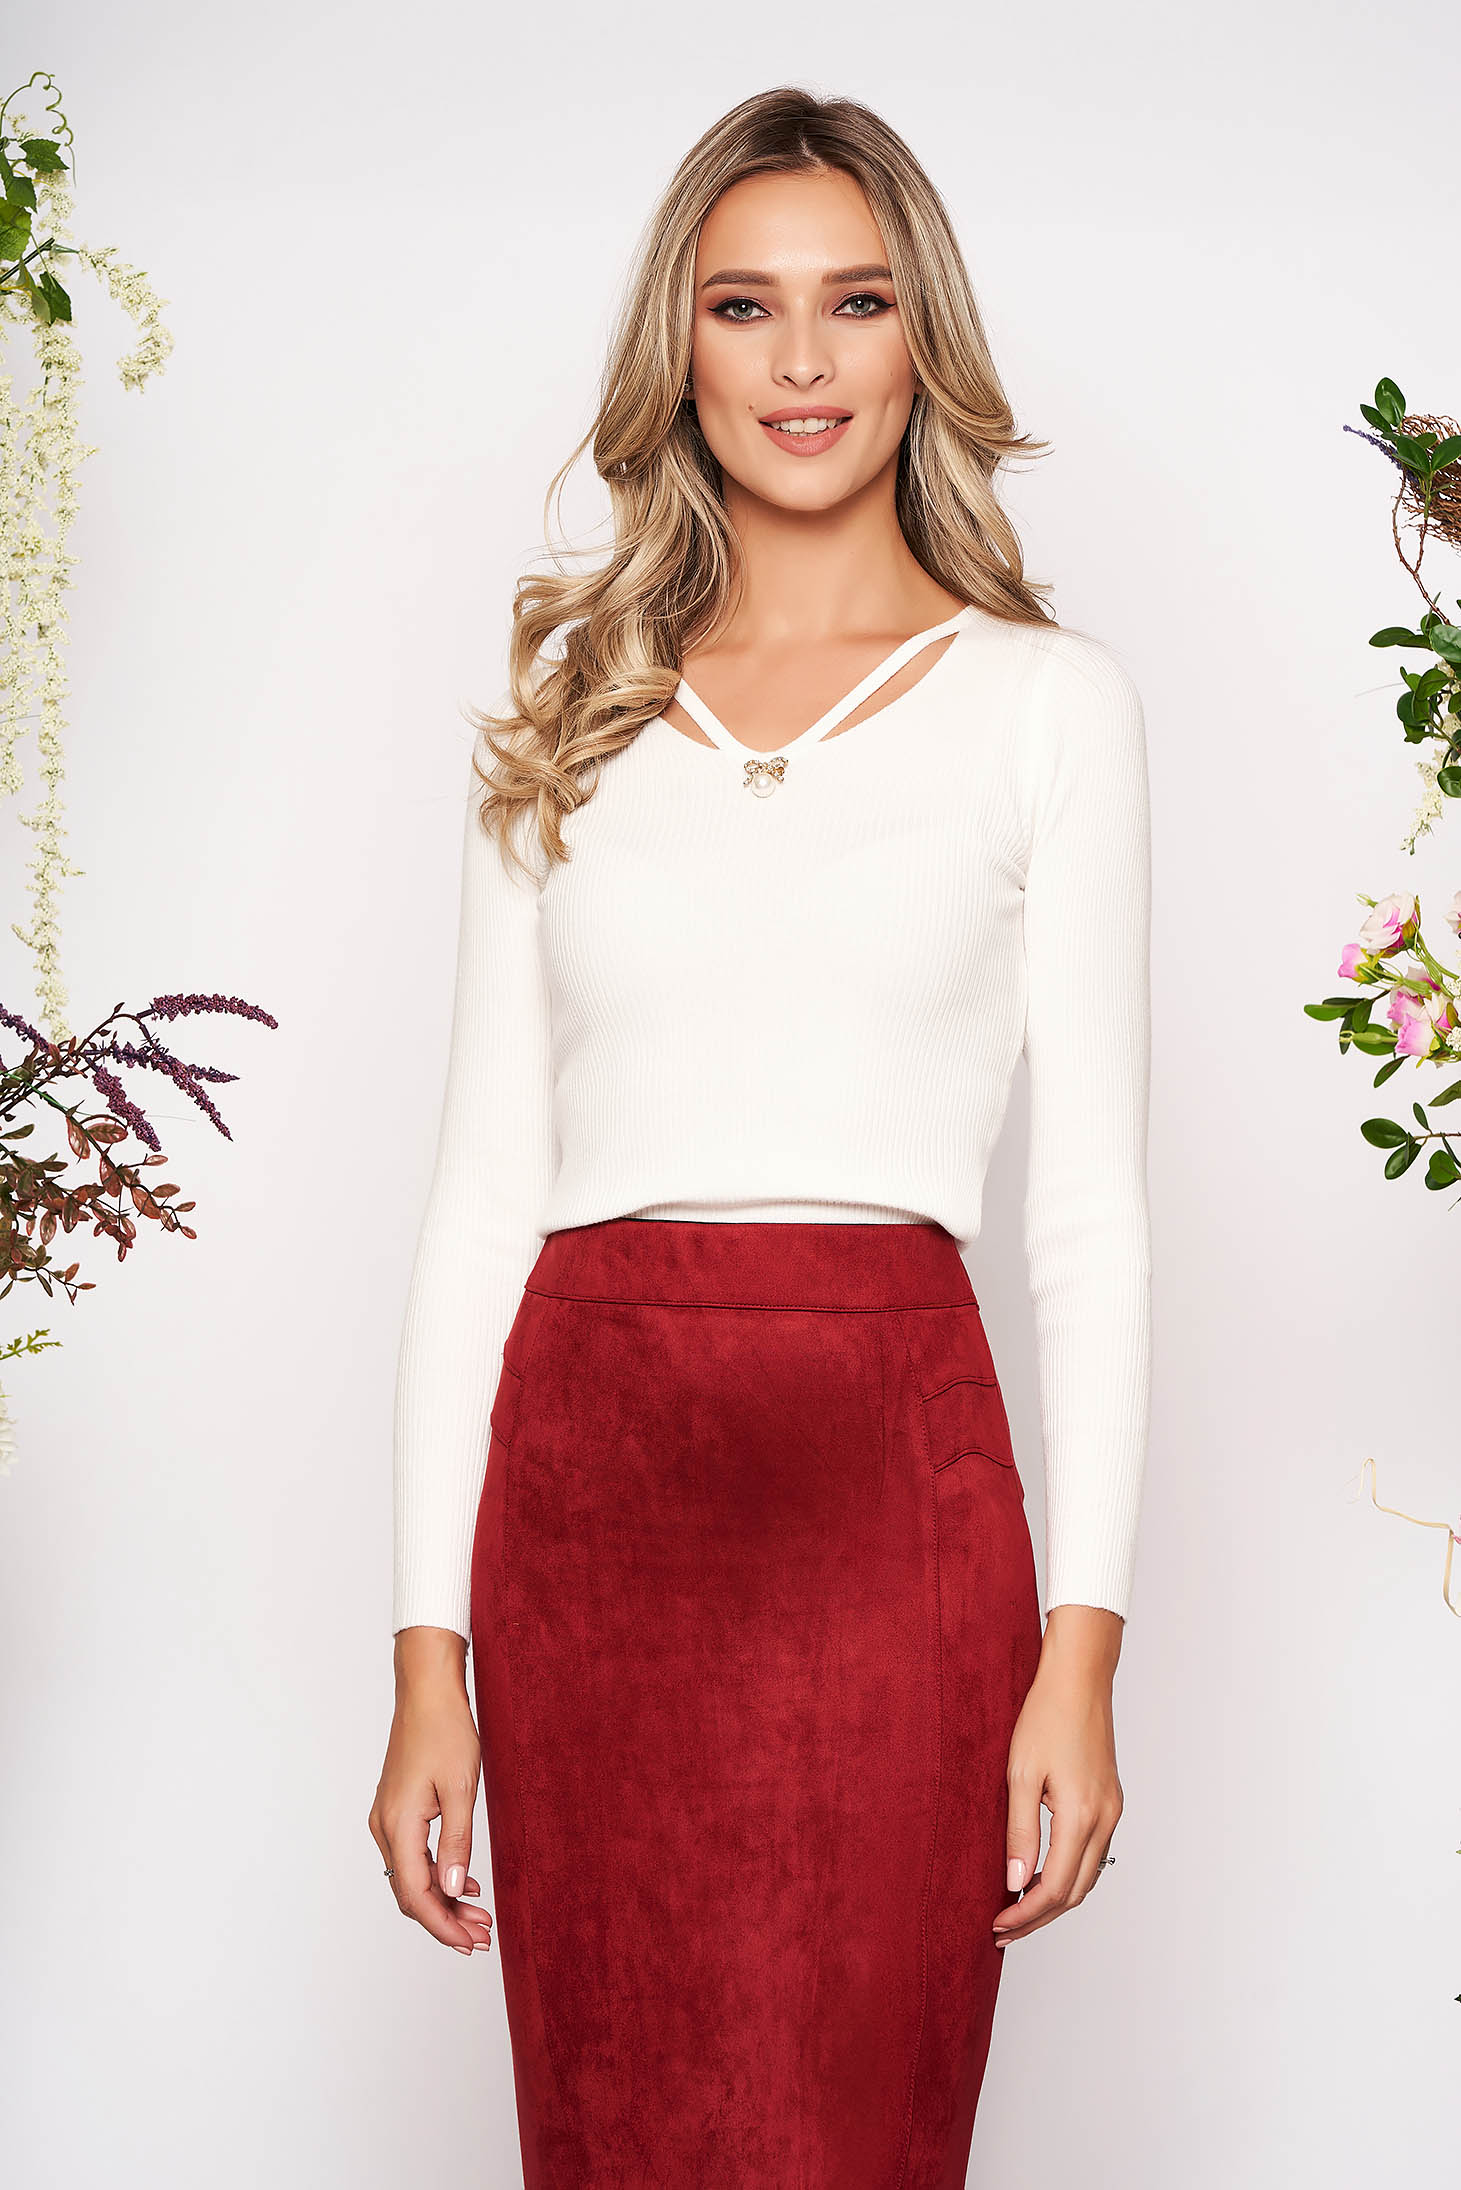 White knitted tented women`s blouse long sleeve with v-neckline front cut-out design accessorized with breastpin